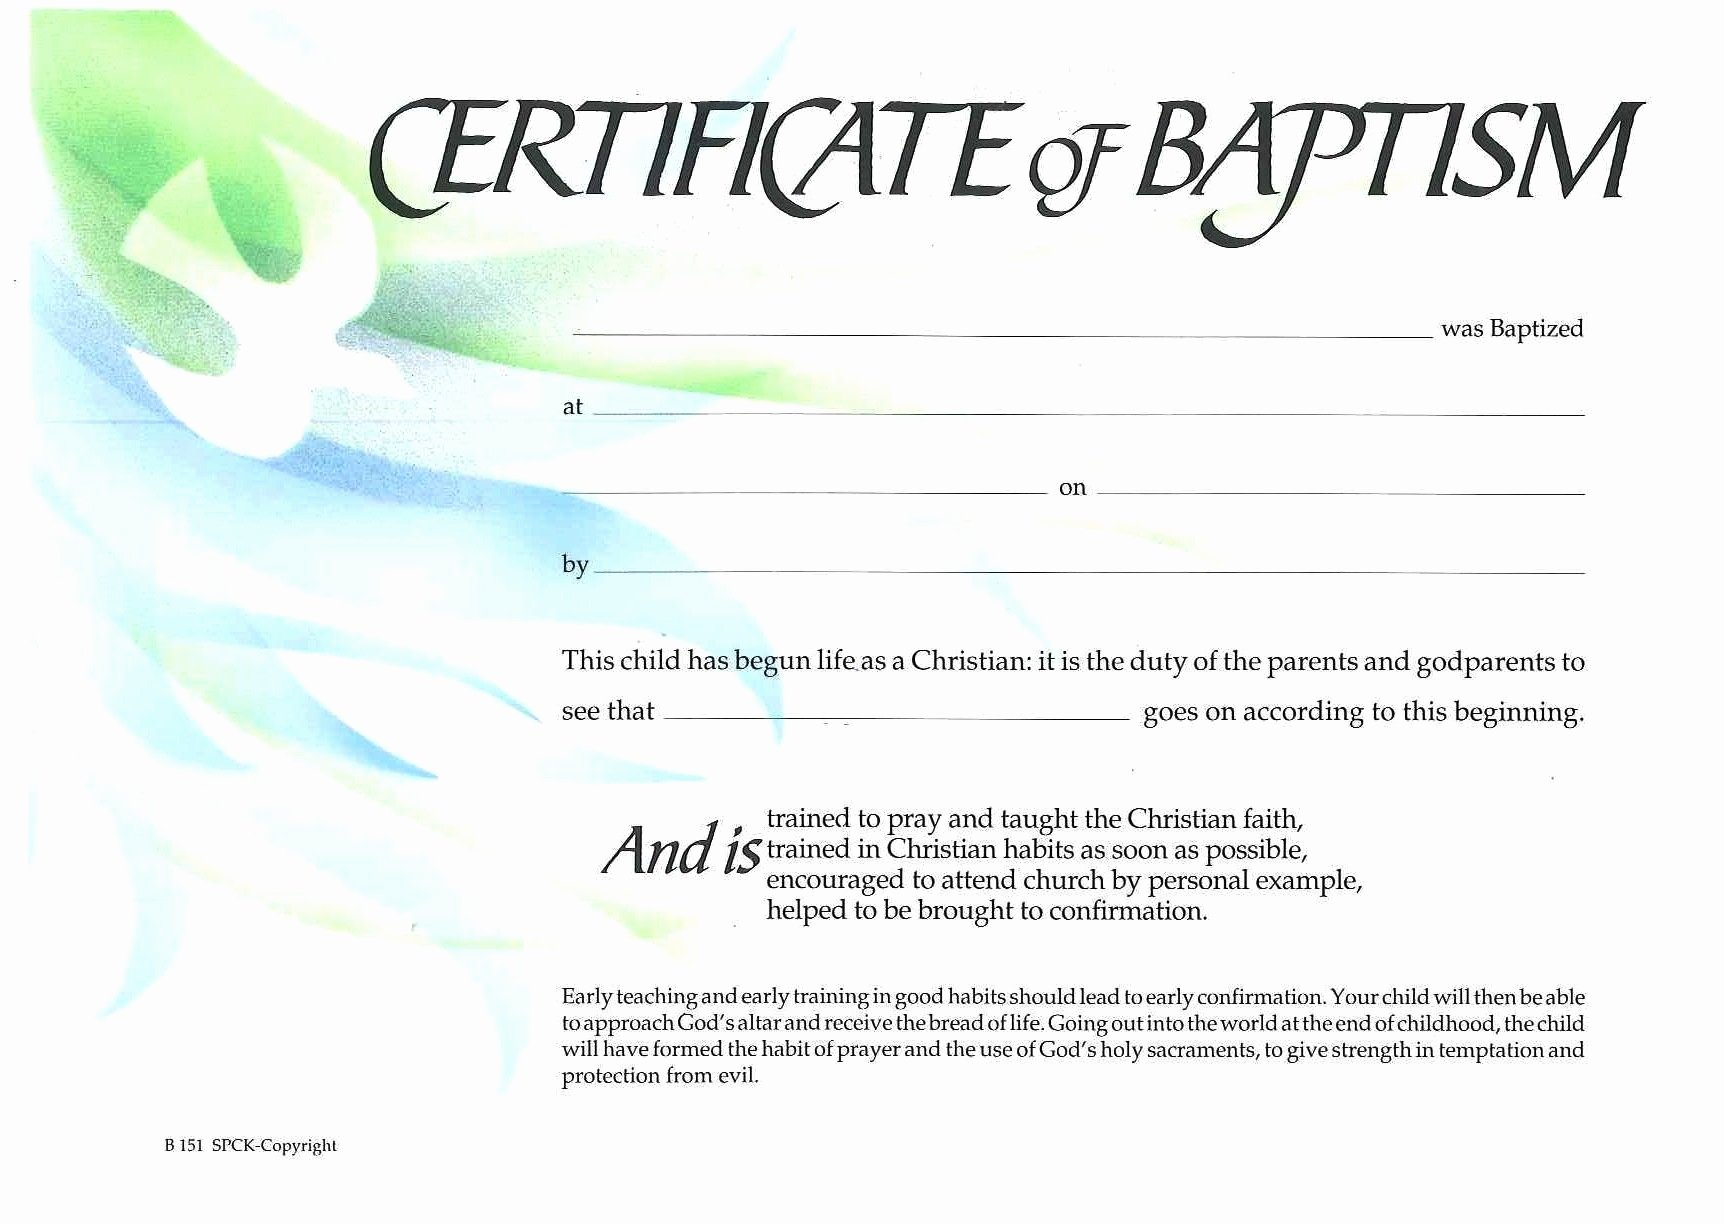 Catholic Baptism Certificate Template Unique Baptism Certificate Xp4eamuz Sunday School